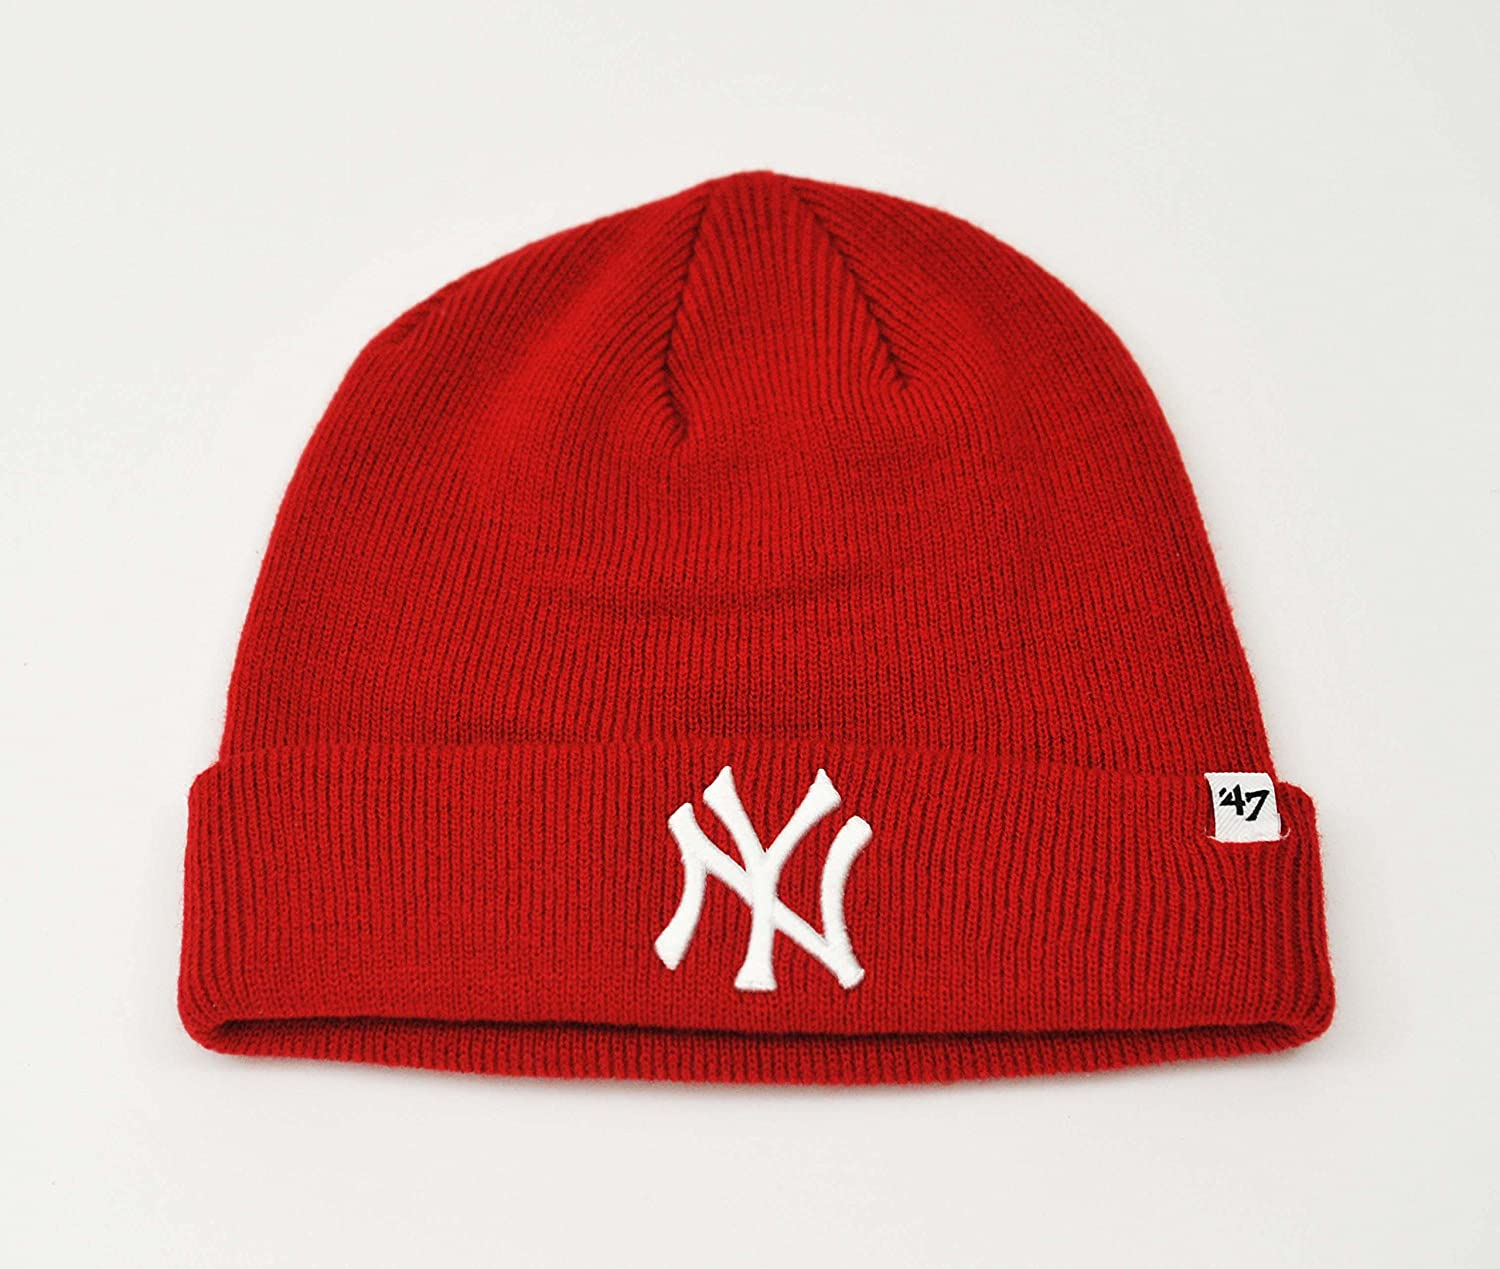 b1fbd54a4 ... coupon amazon mlb new york yankees 47 brand cuffed knit hat beanie red  sports outdoors 04b13